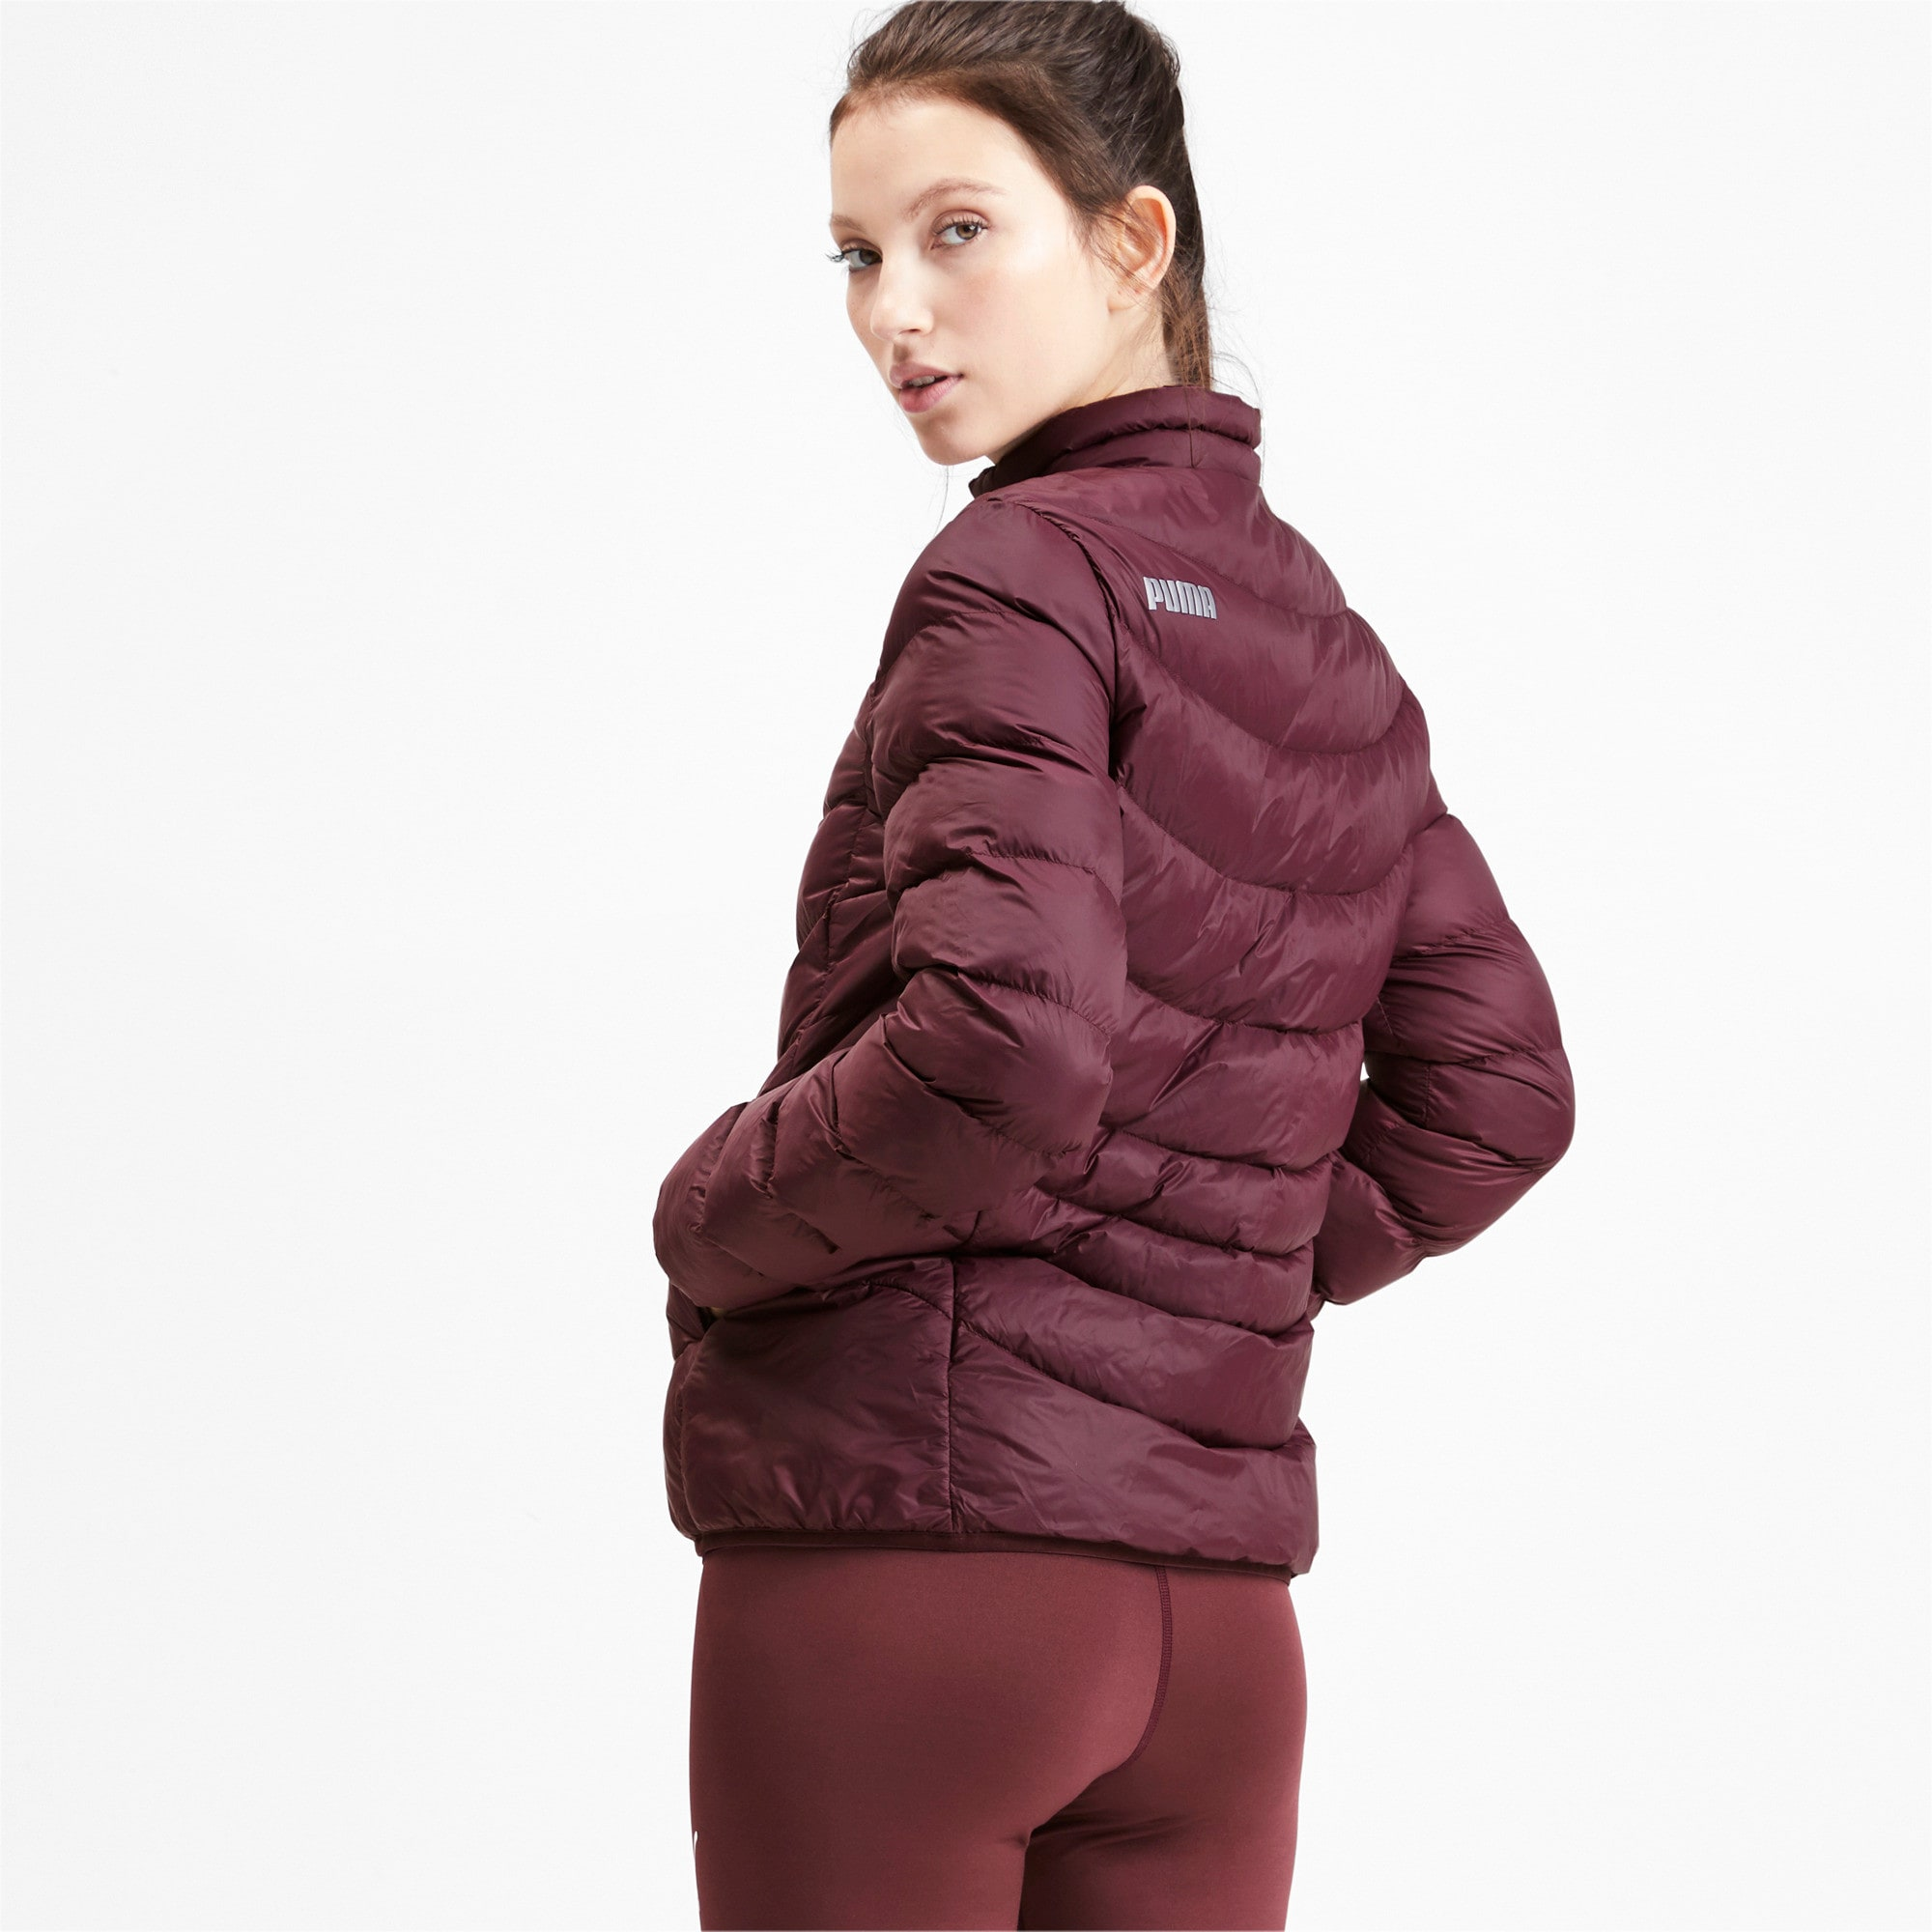 Thumbnail 2 of Ultralight warmCELL Damen Jacke, Vineyard Wine, medium